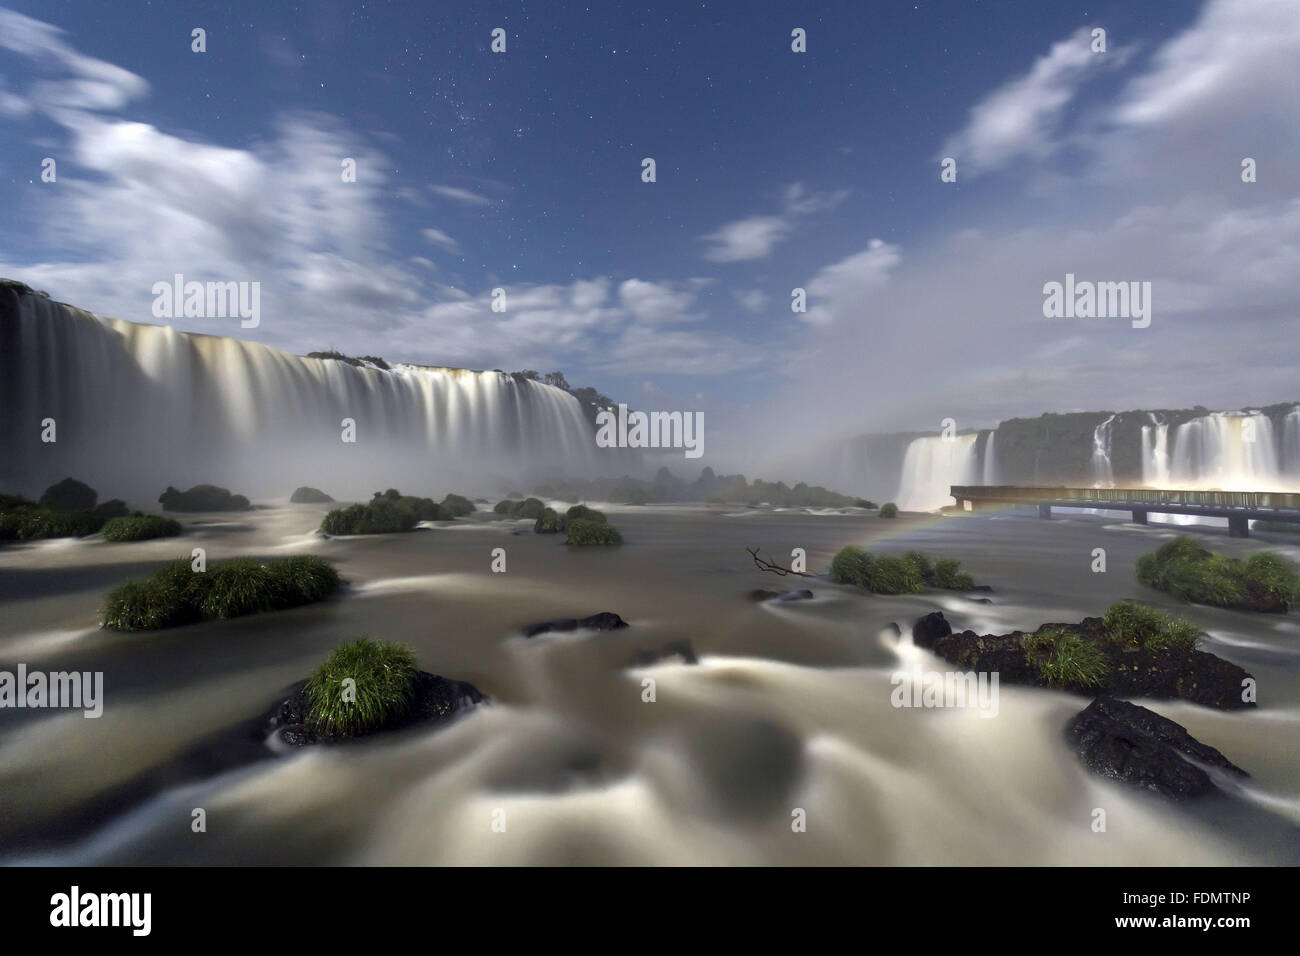 Night rainbow formed by the light of the full moon in the Iguaçu Falls - Stock Image